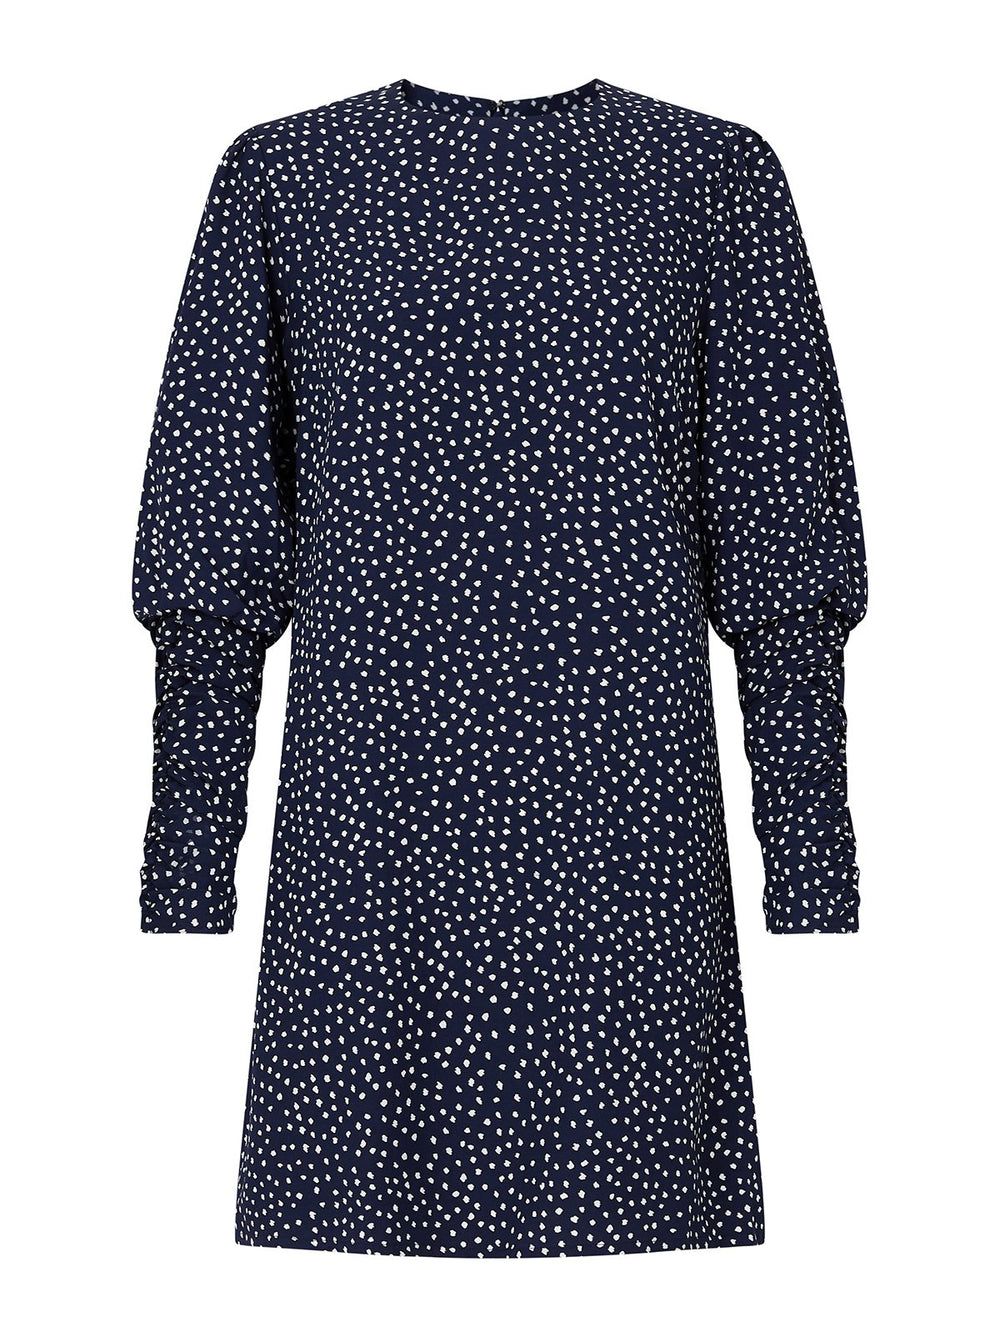 Alexandra Navy Spot Print Mini Dress by KITRI Studio